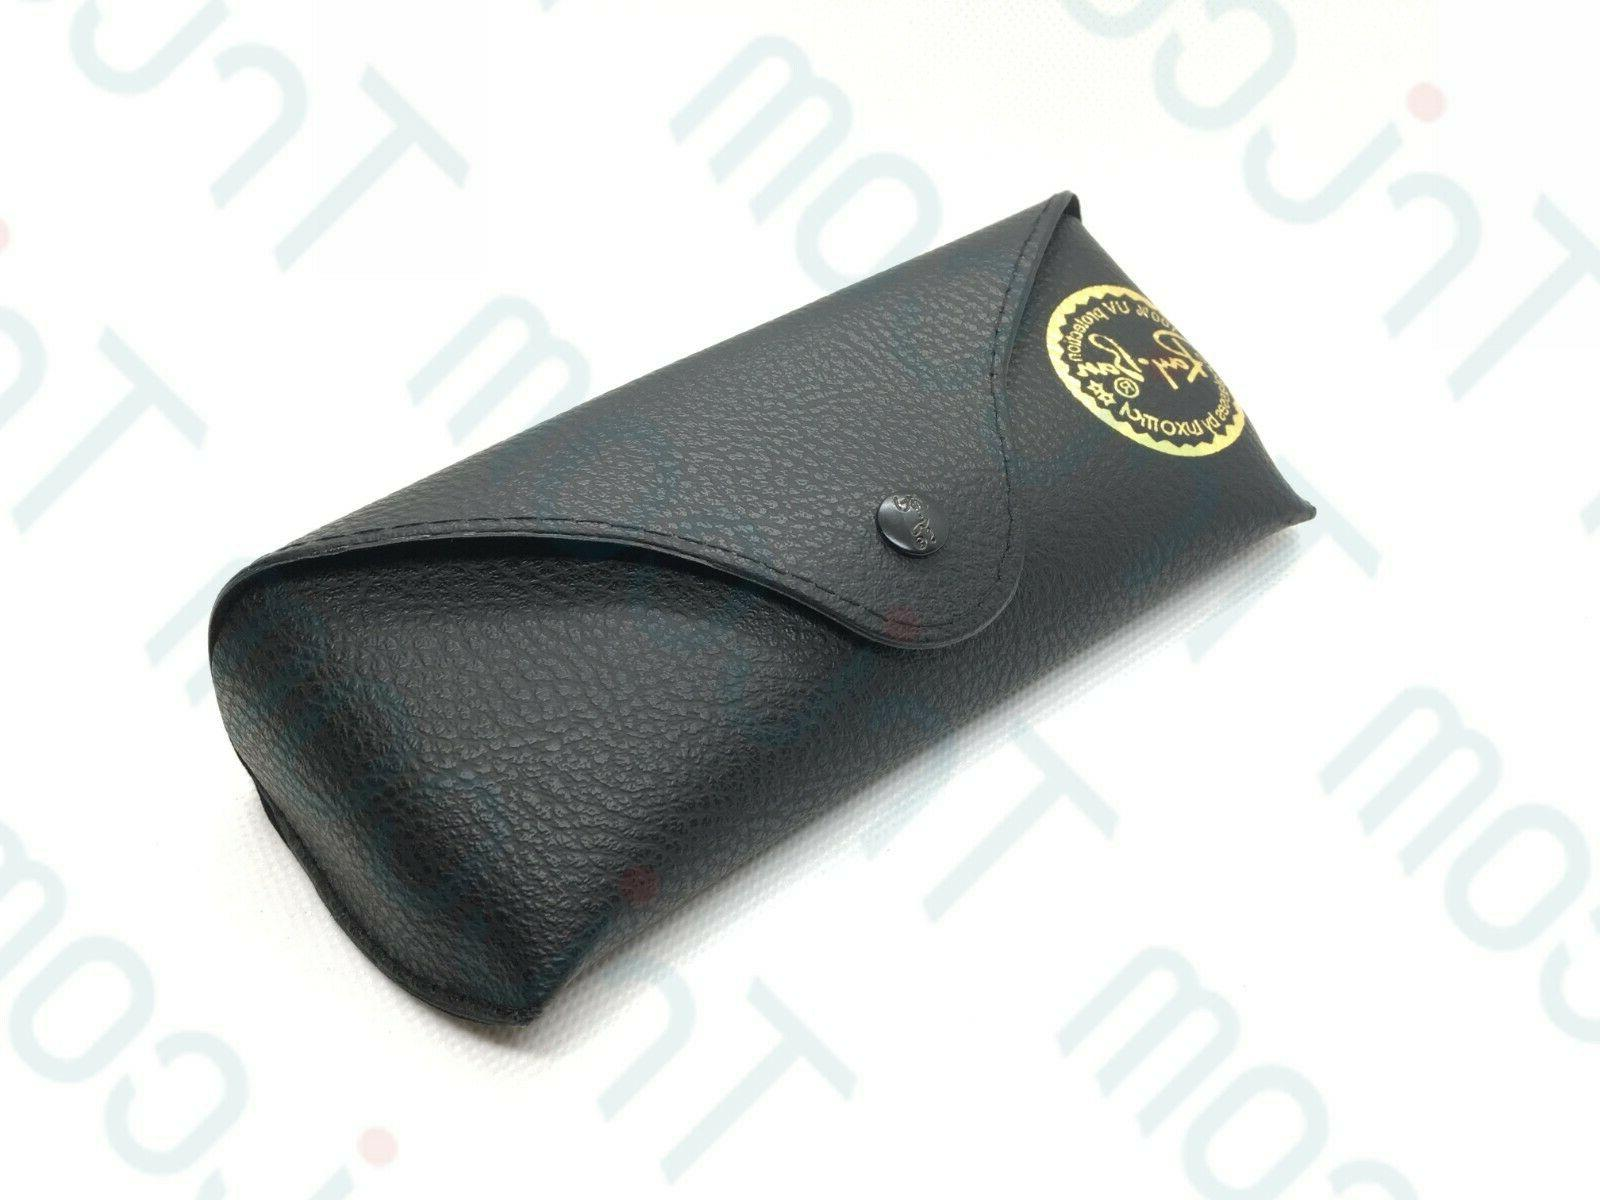 Ray-Ban Eyeglasses Soft Case with Cloth